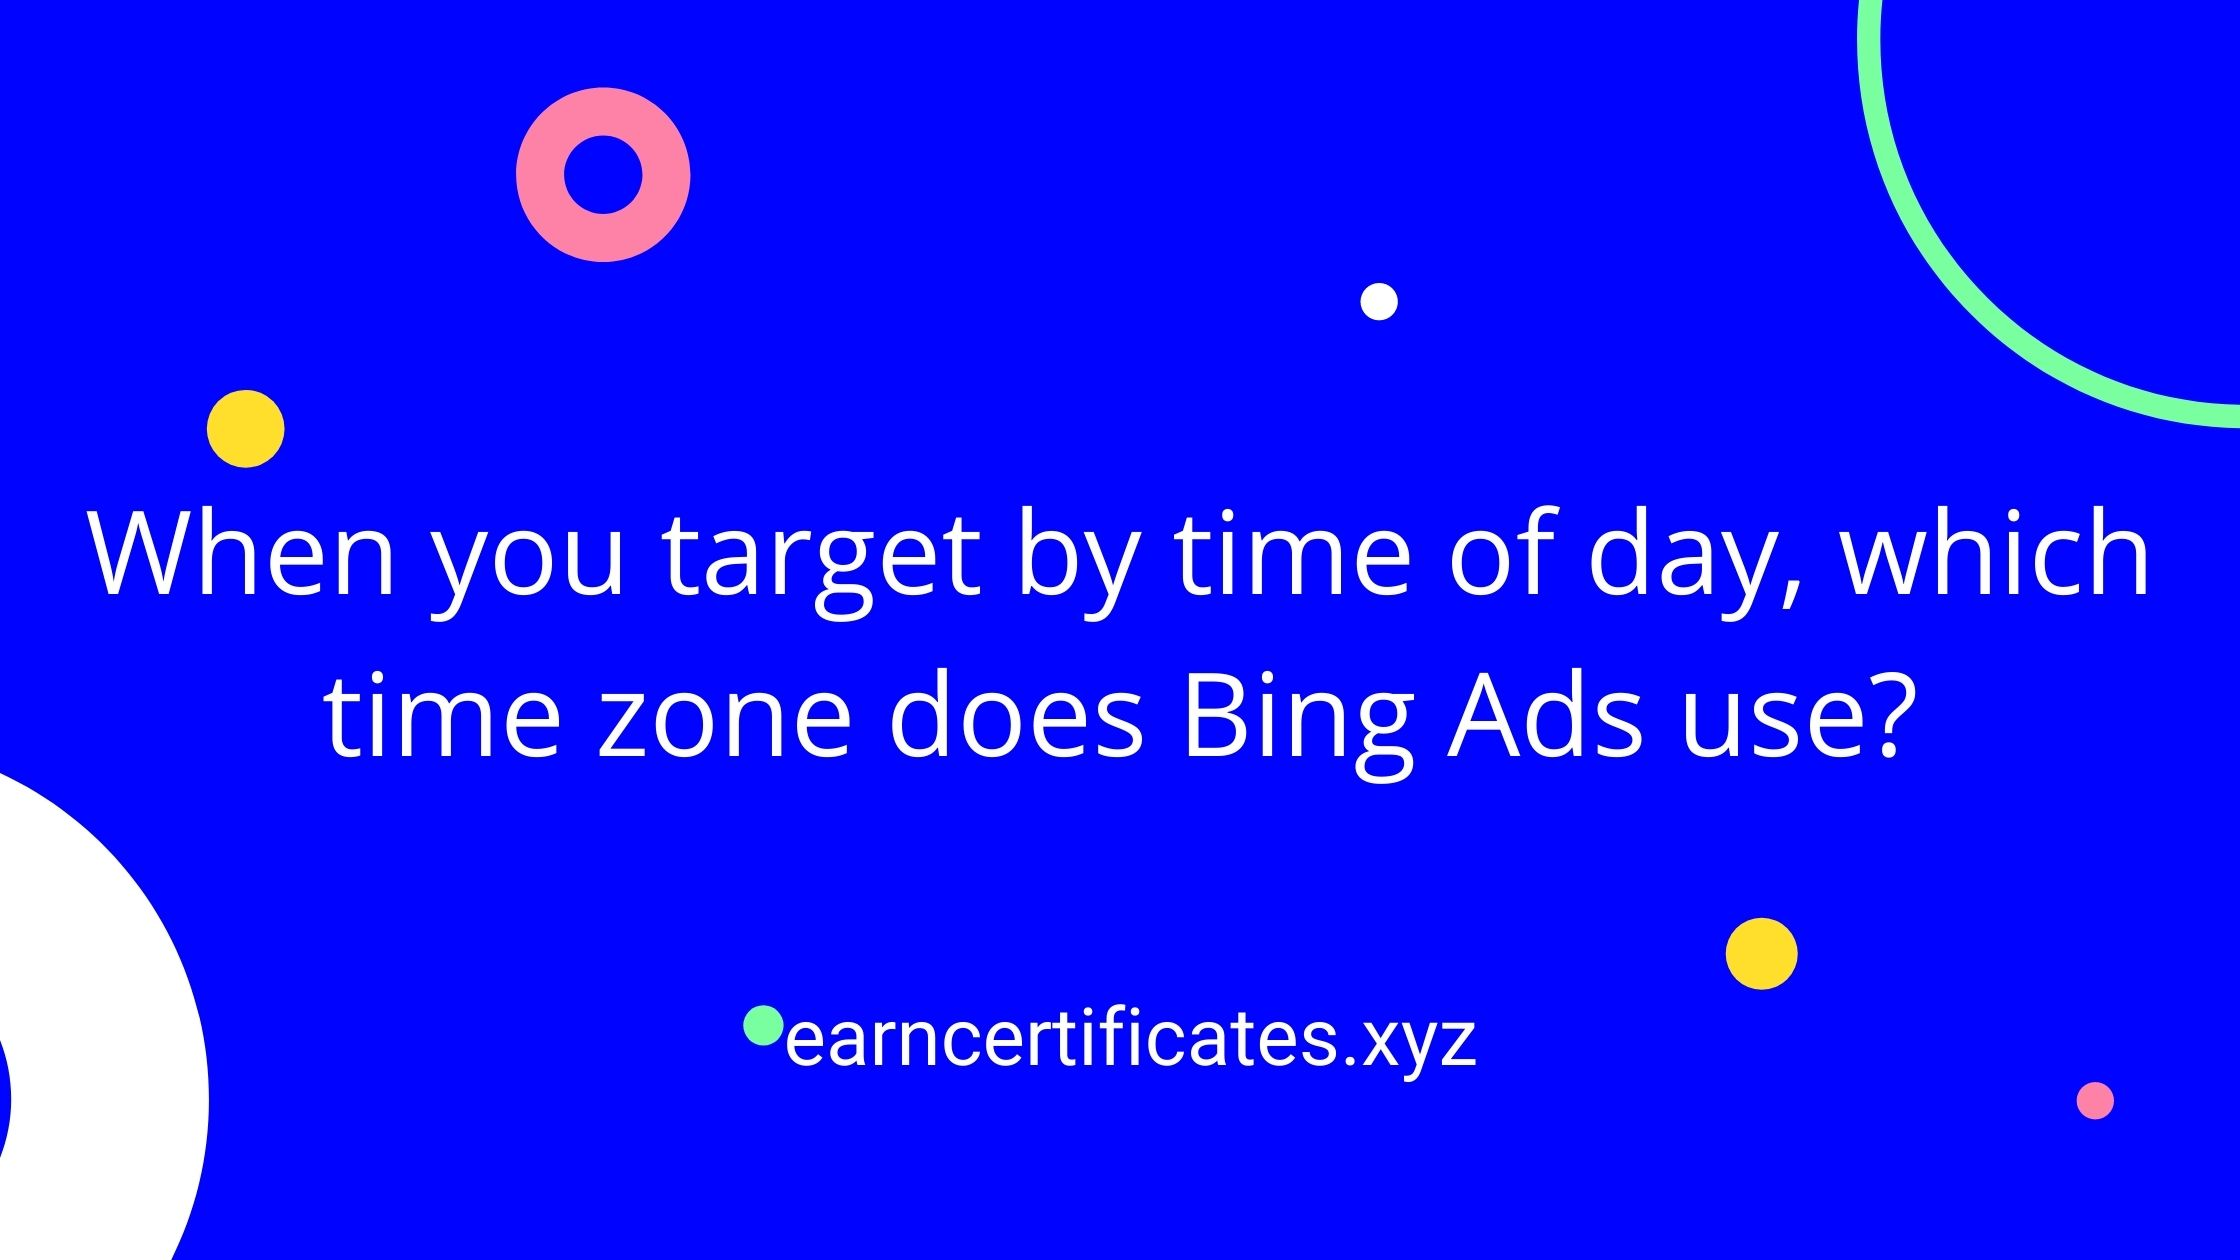 When you target by time of day, which time zone does Bing Ads use?